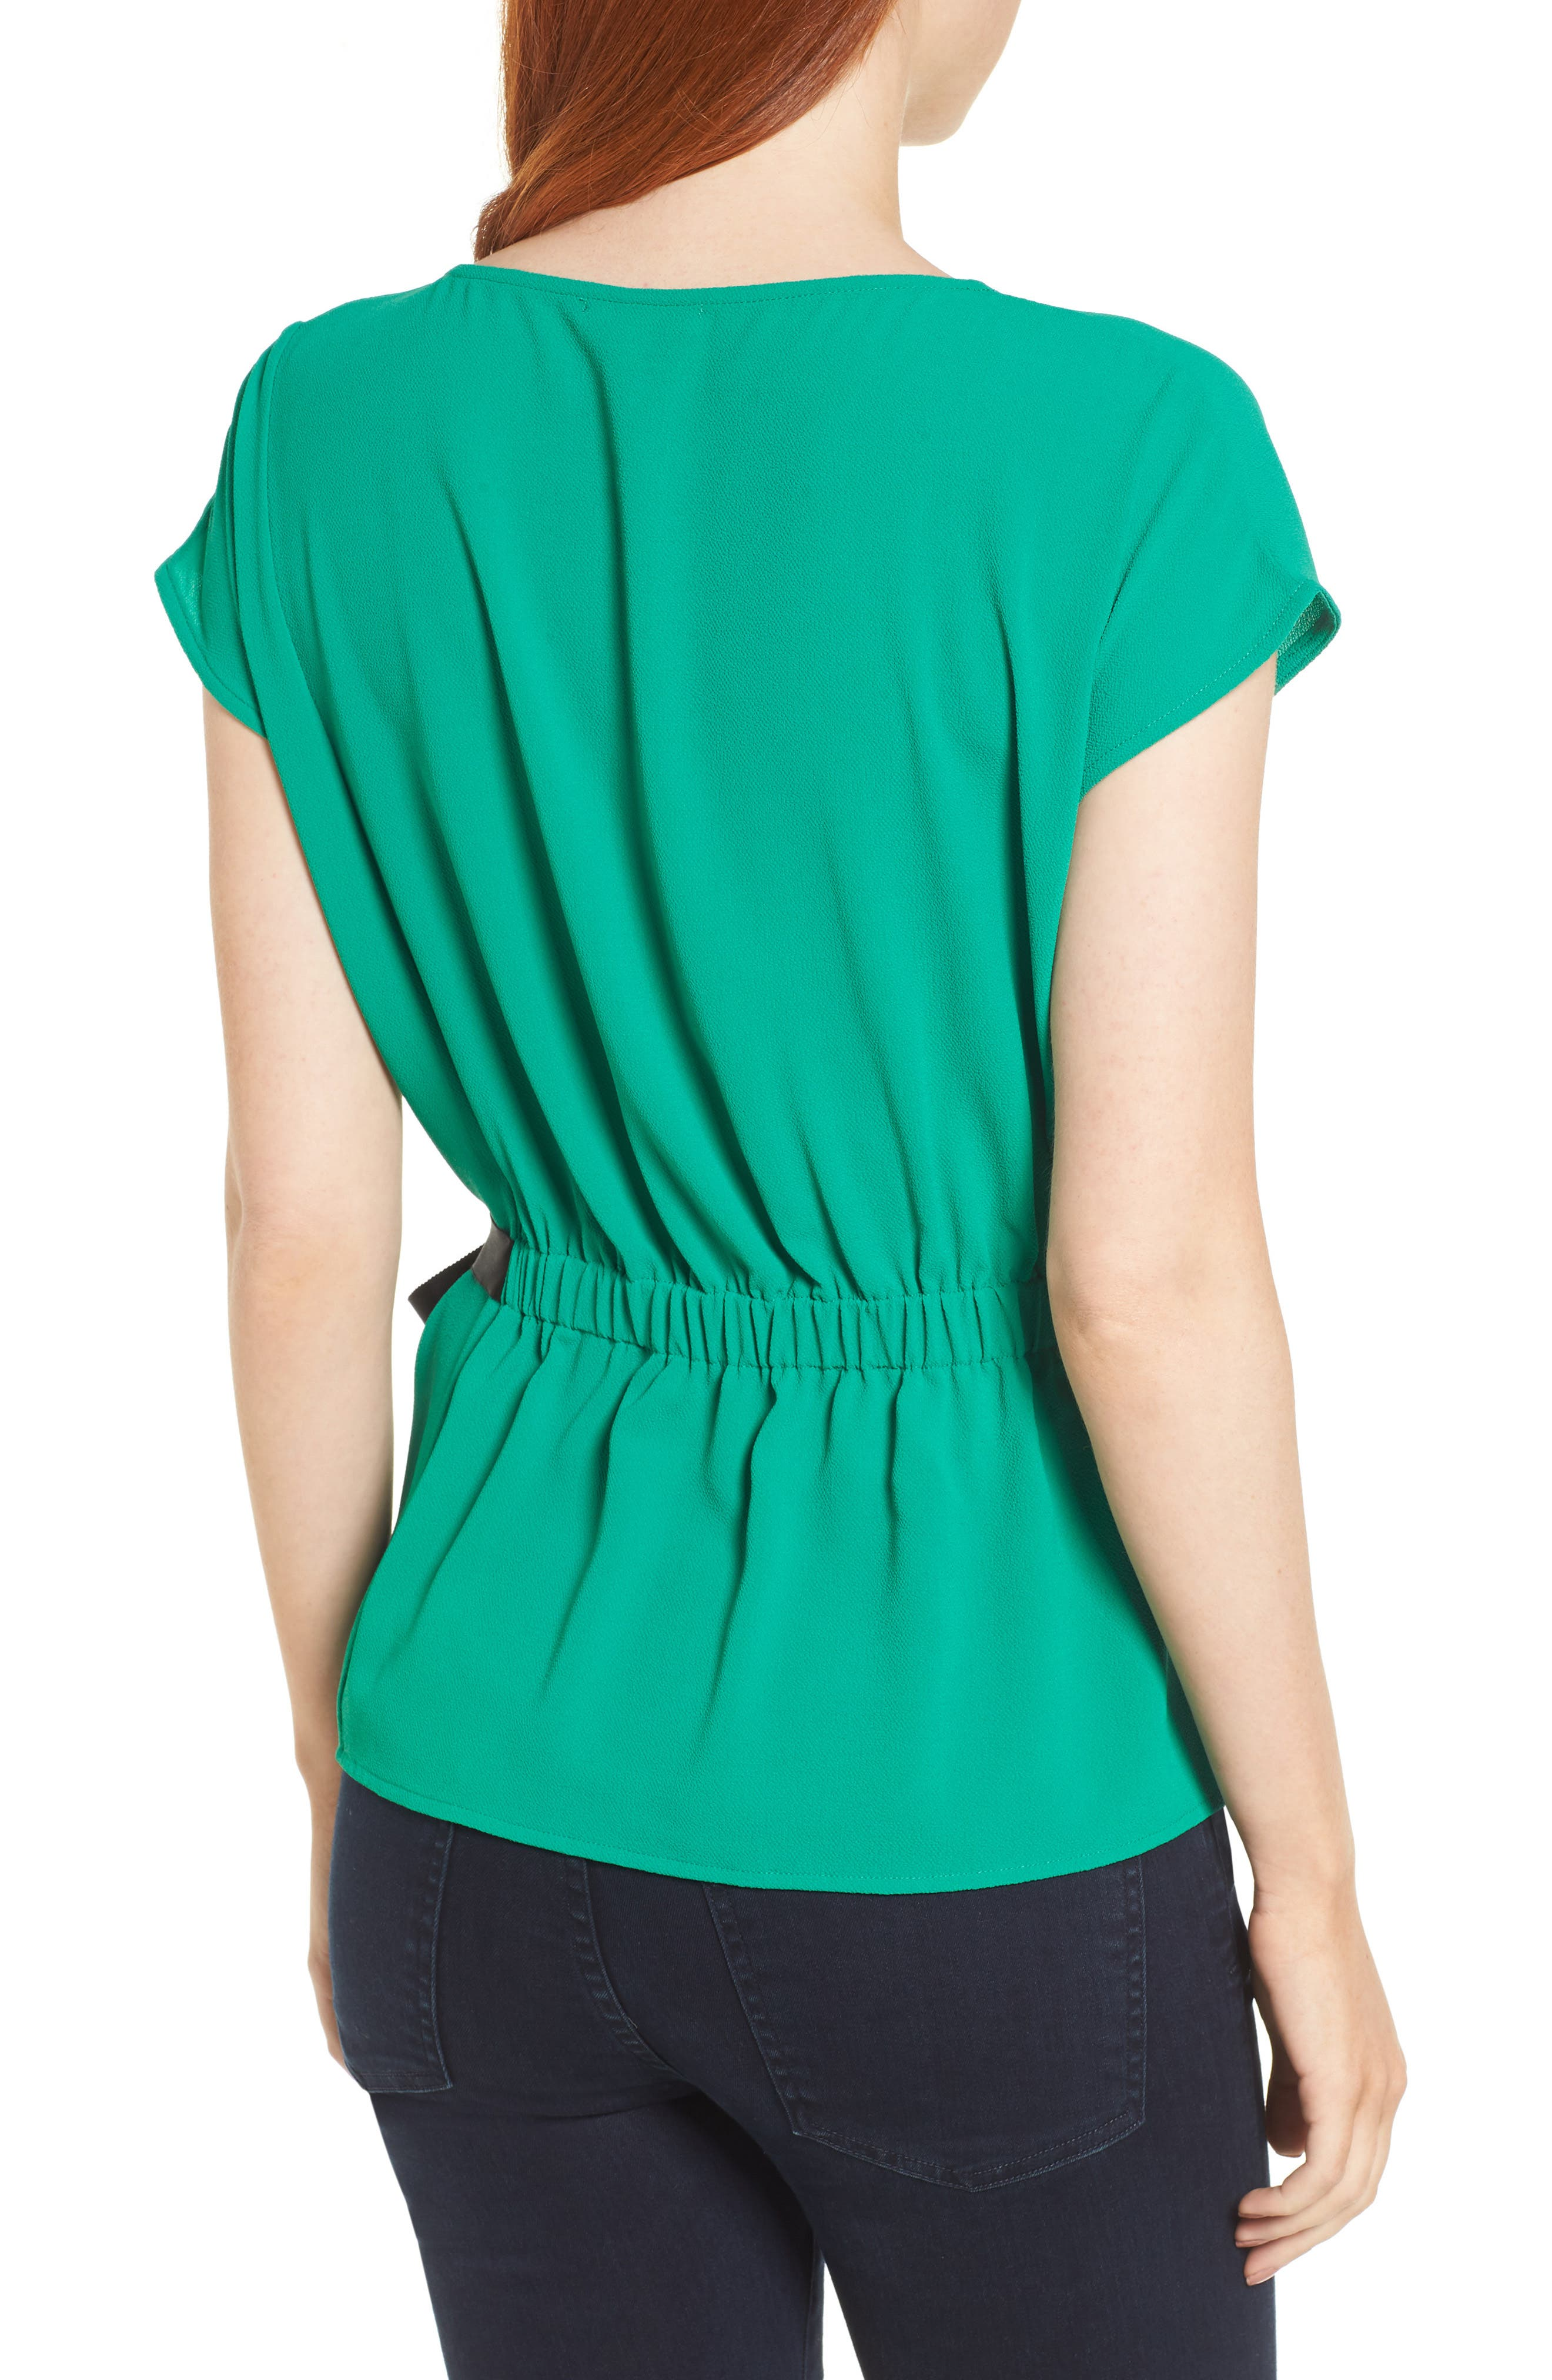 Gathered Waist Side Tie Top,                             Alternate thumbnail 2, color,                             Kelly Green With Black Tie